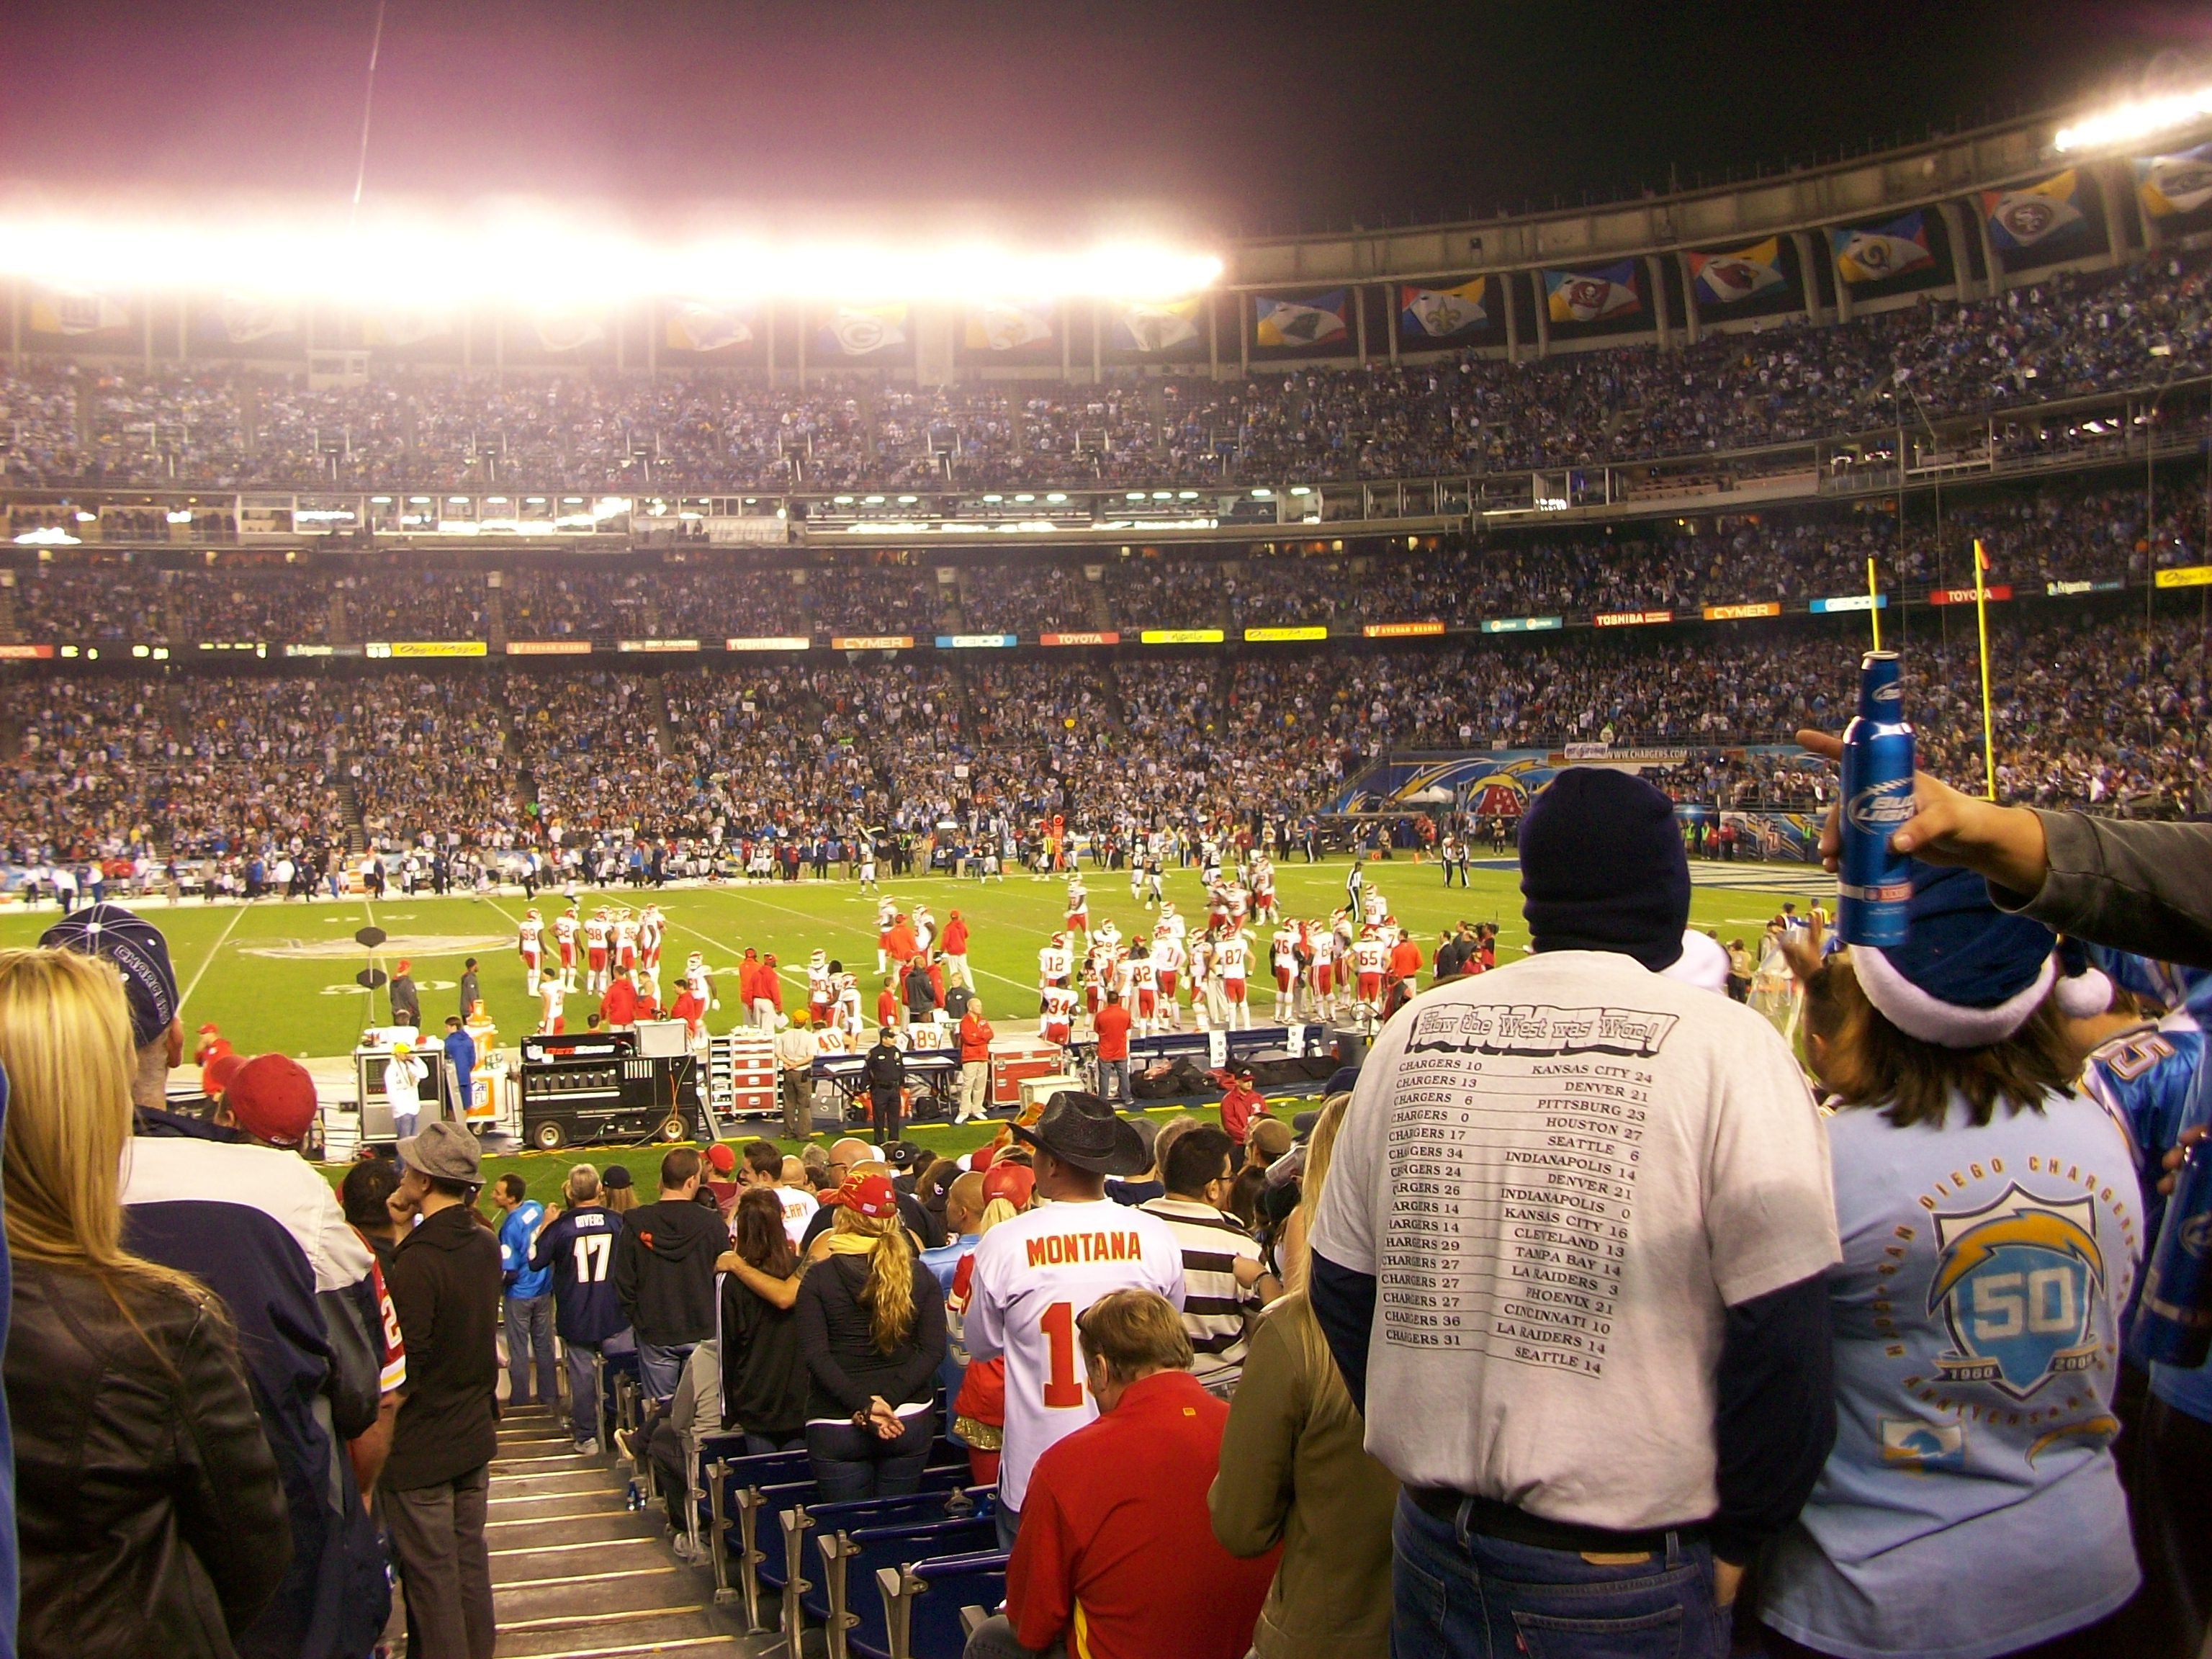 Exciting game. Well, not really, at Qualcomm Stadium for Chargers/ Kansas City.